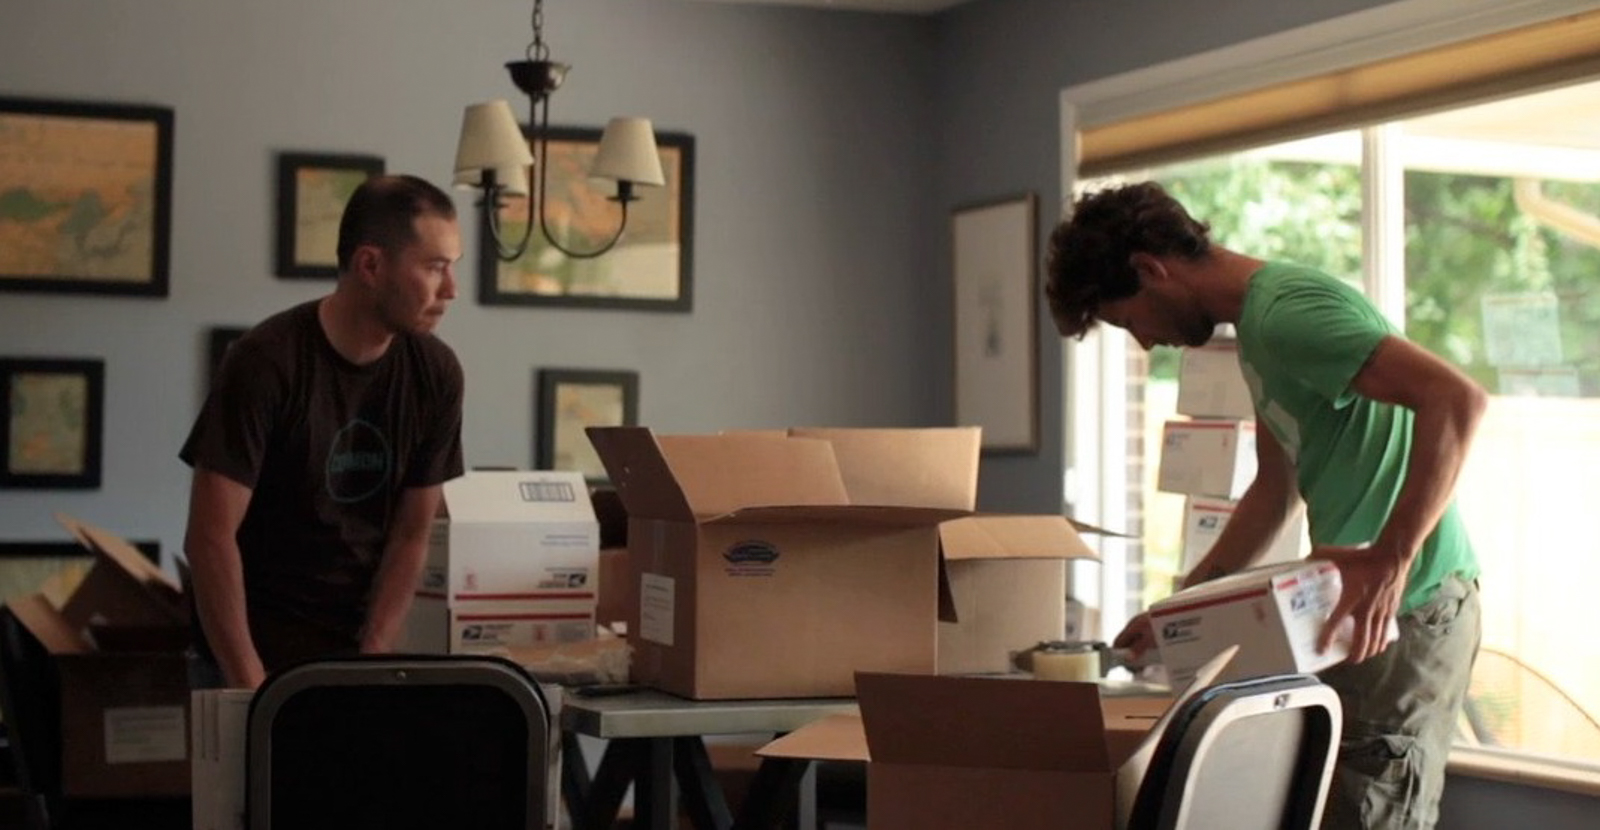 In 2011, Secret Drink Mix orders were picked and packed in Aaron Foster's living room. Photo: Jamie Kripke.